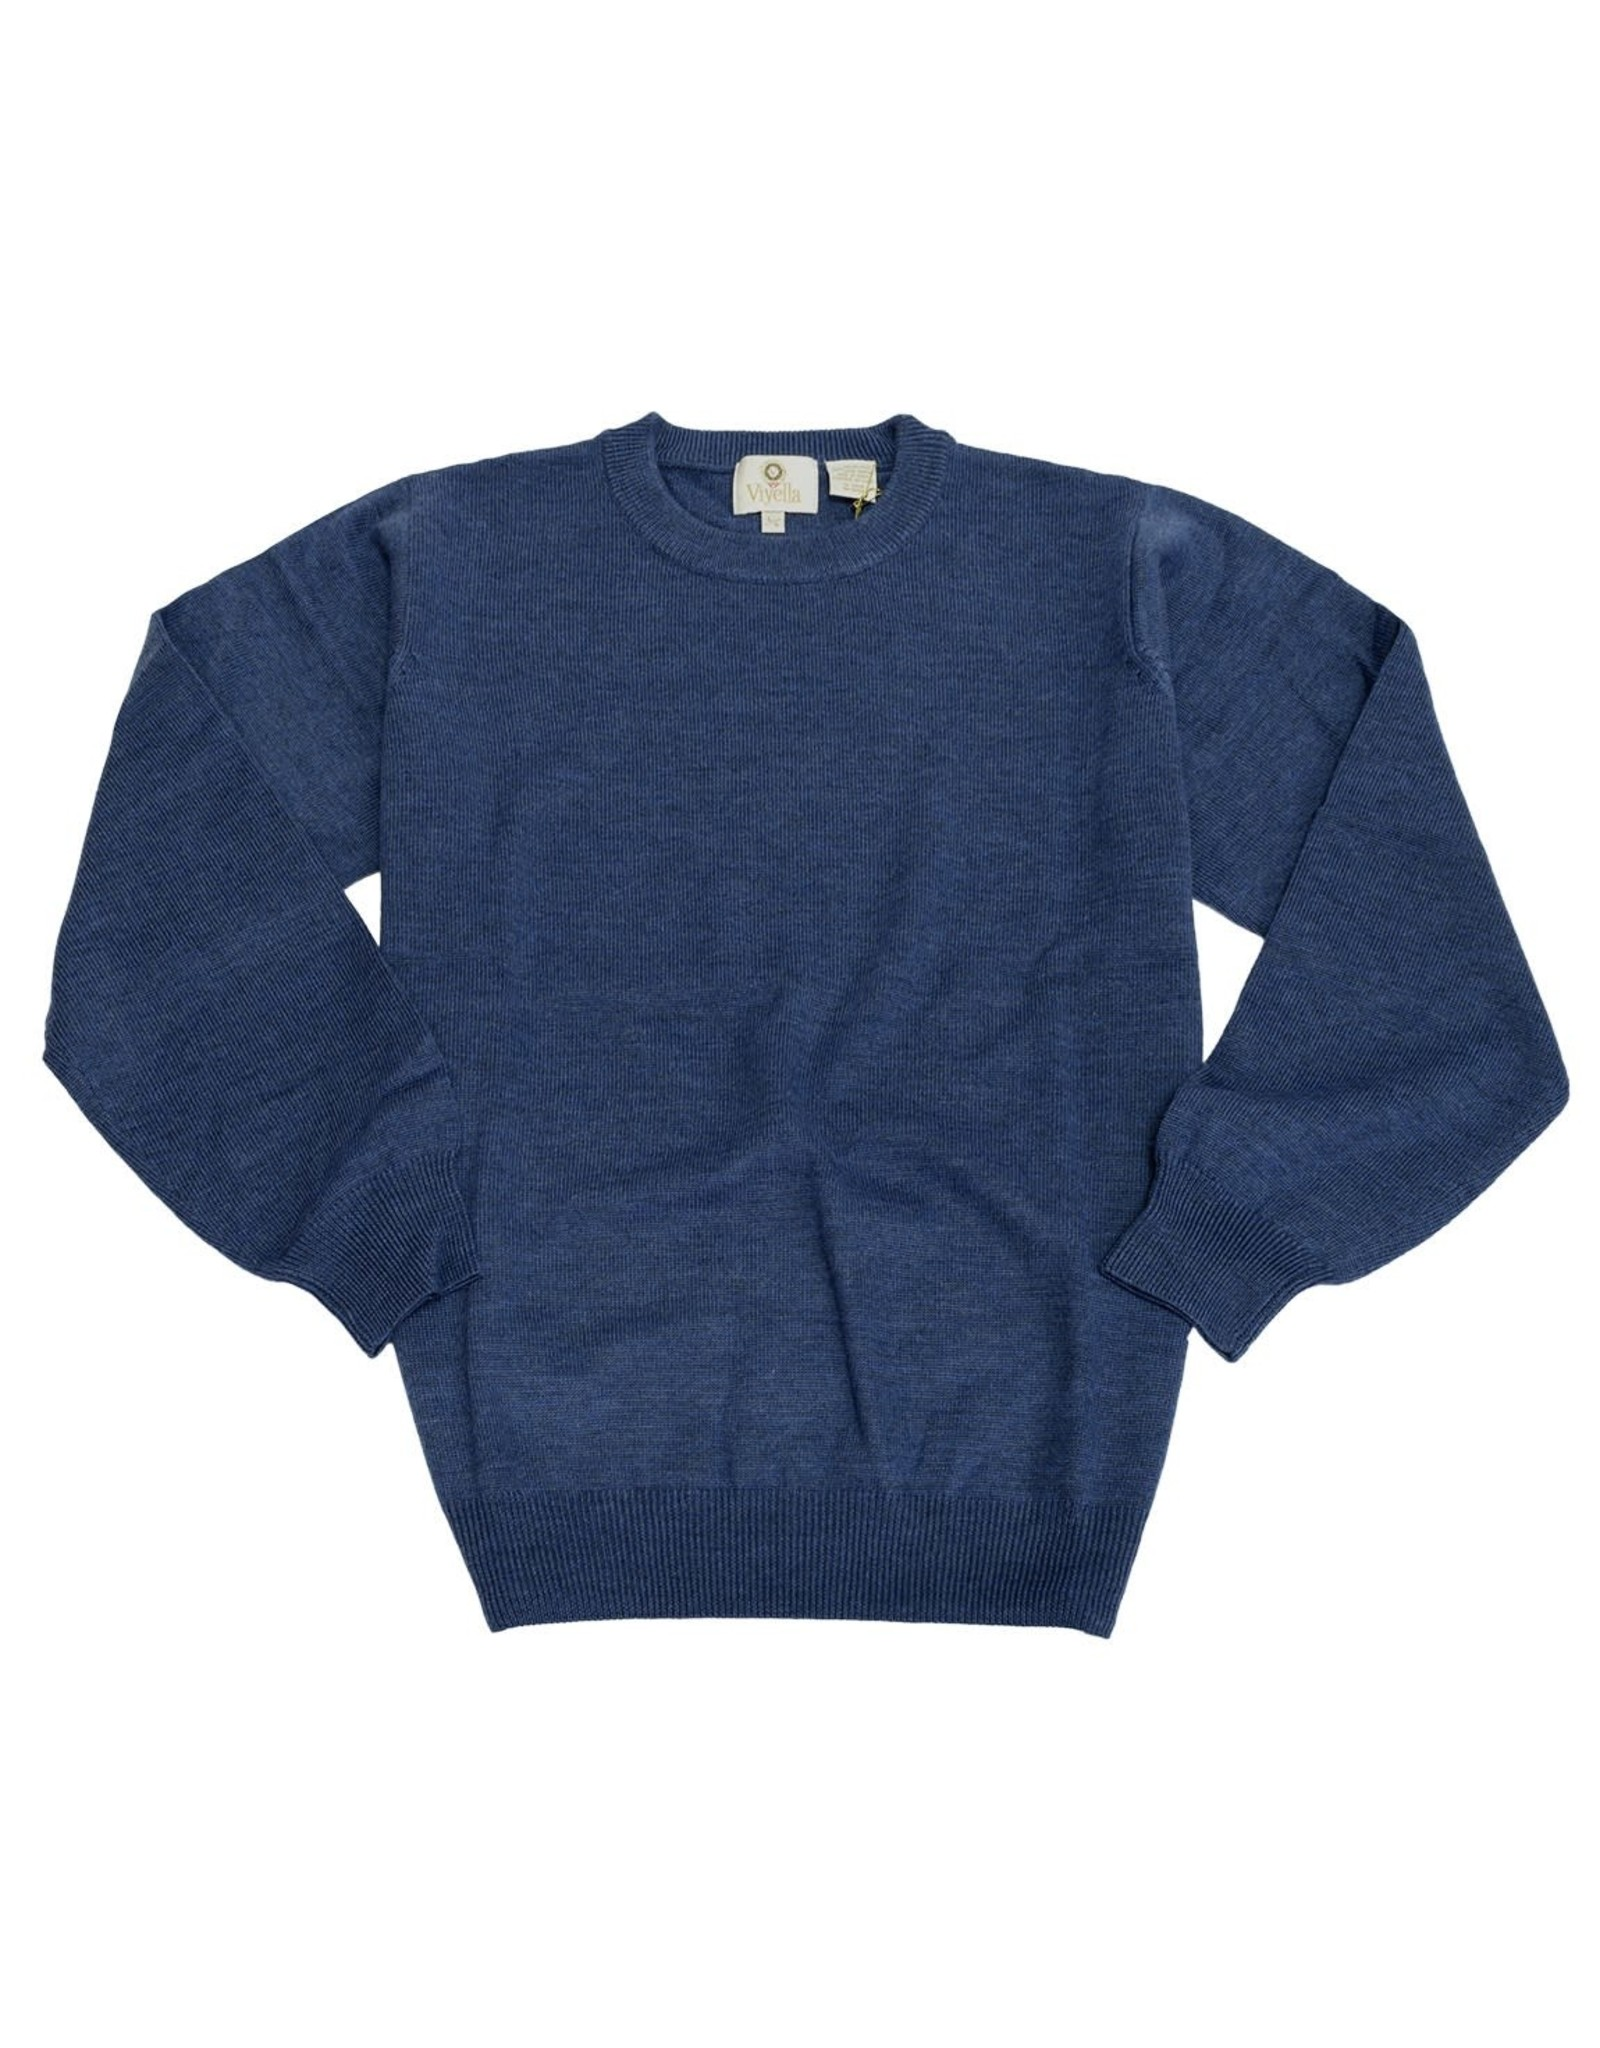 Viyella Basic Crew Sweater 100% Wool